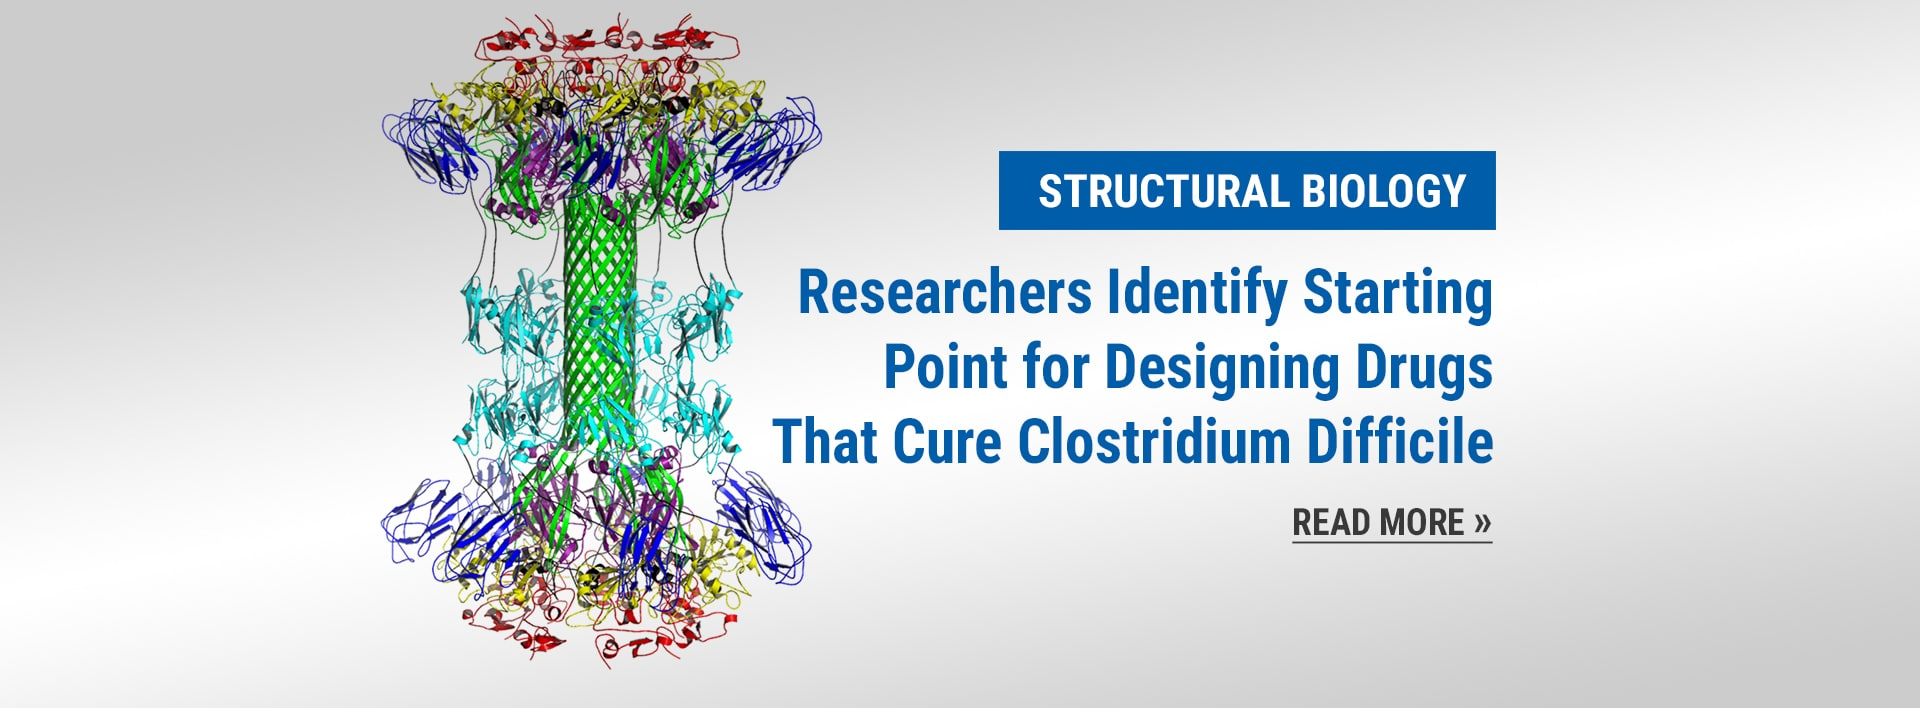 Structura Biology News: Researchers Identify Starting Point for Designing Drugs That Cure Clostridium Difficile